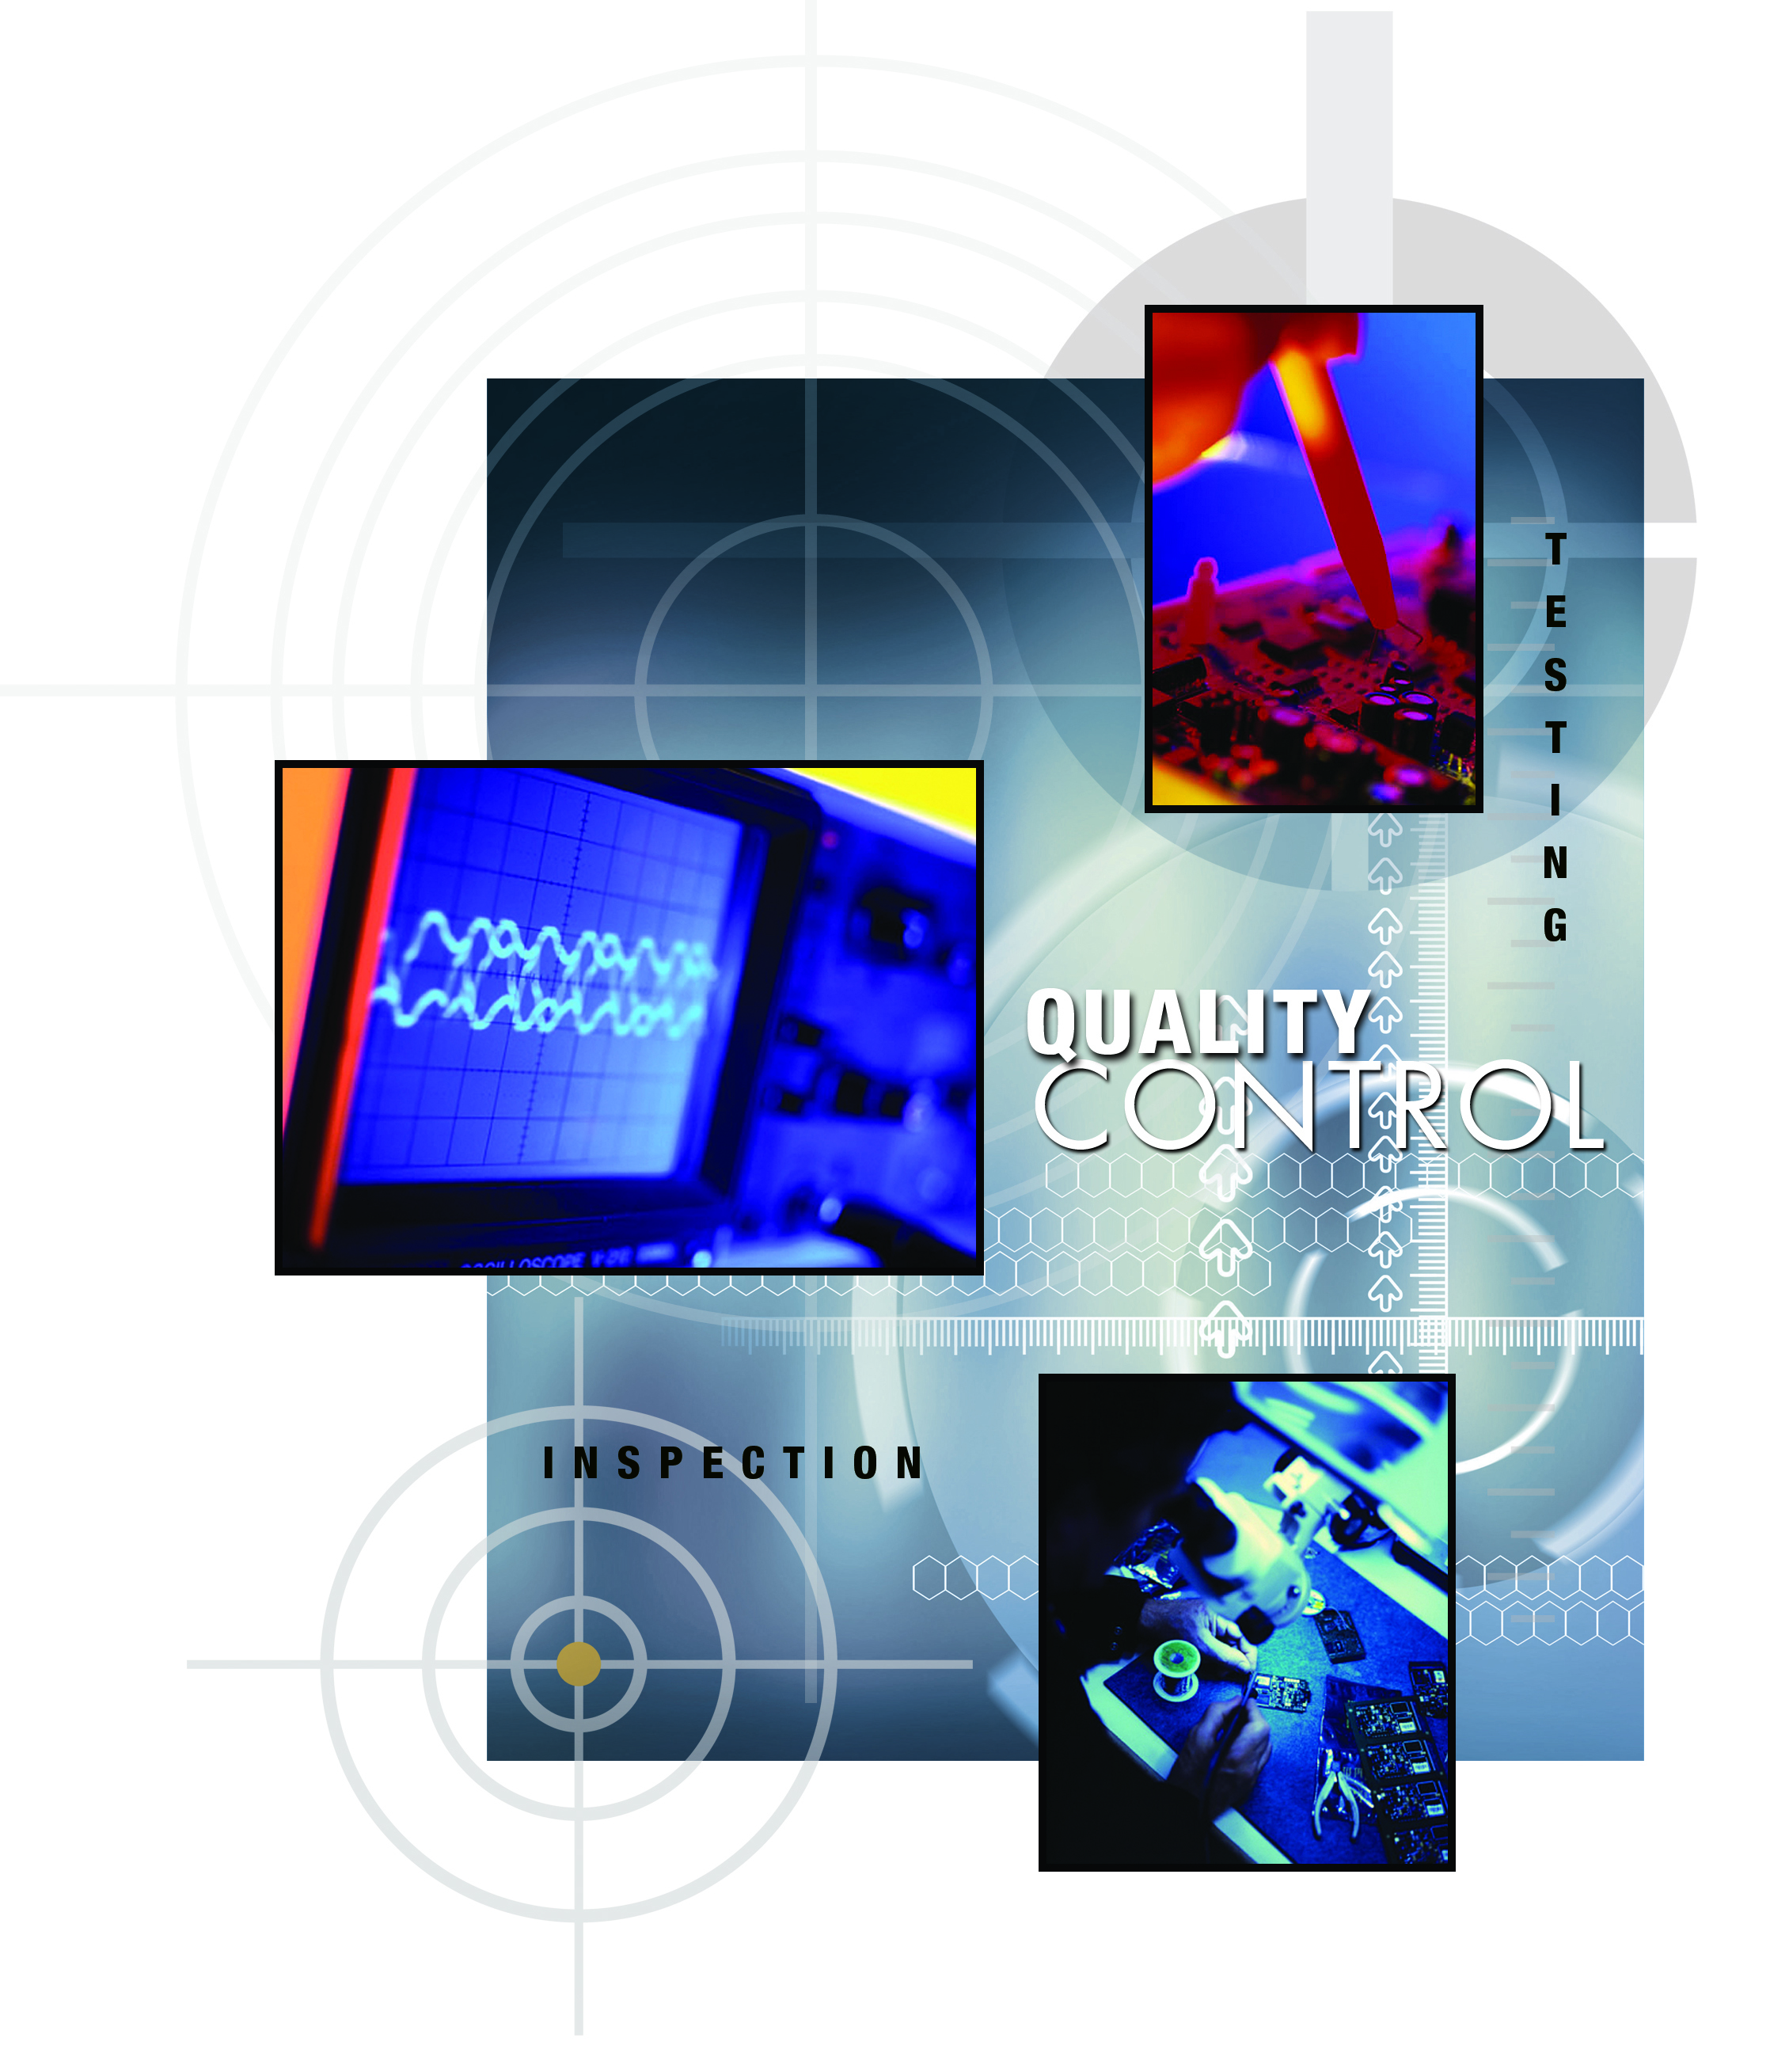 goldak products accessories from our in the field experience and top level research and development department to our manufacturing strategies and quality control